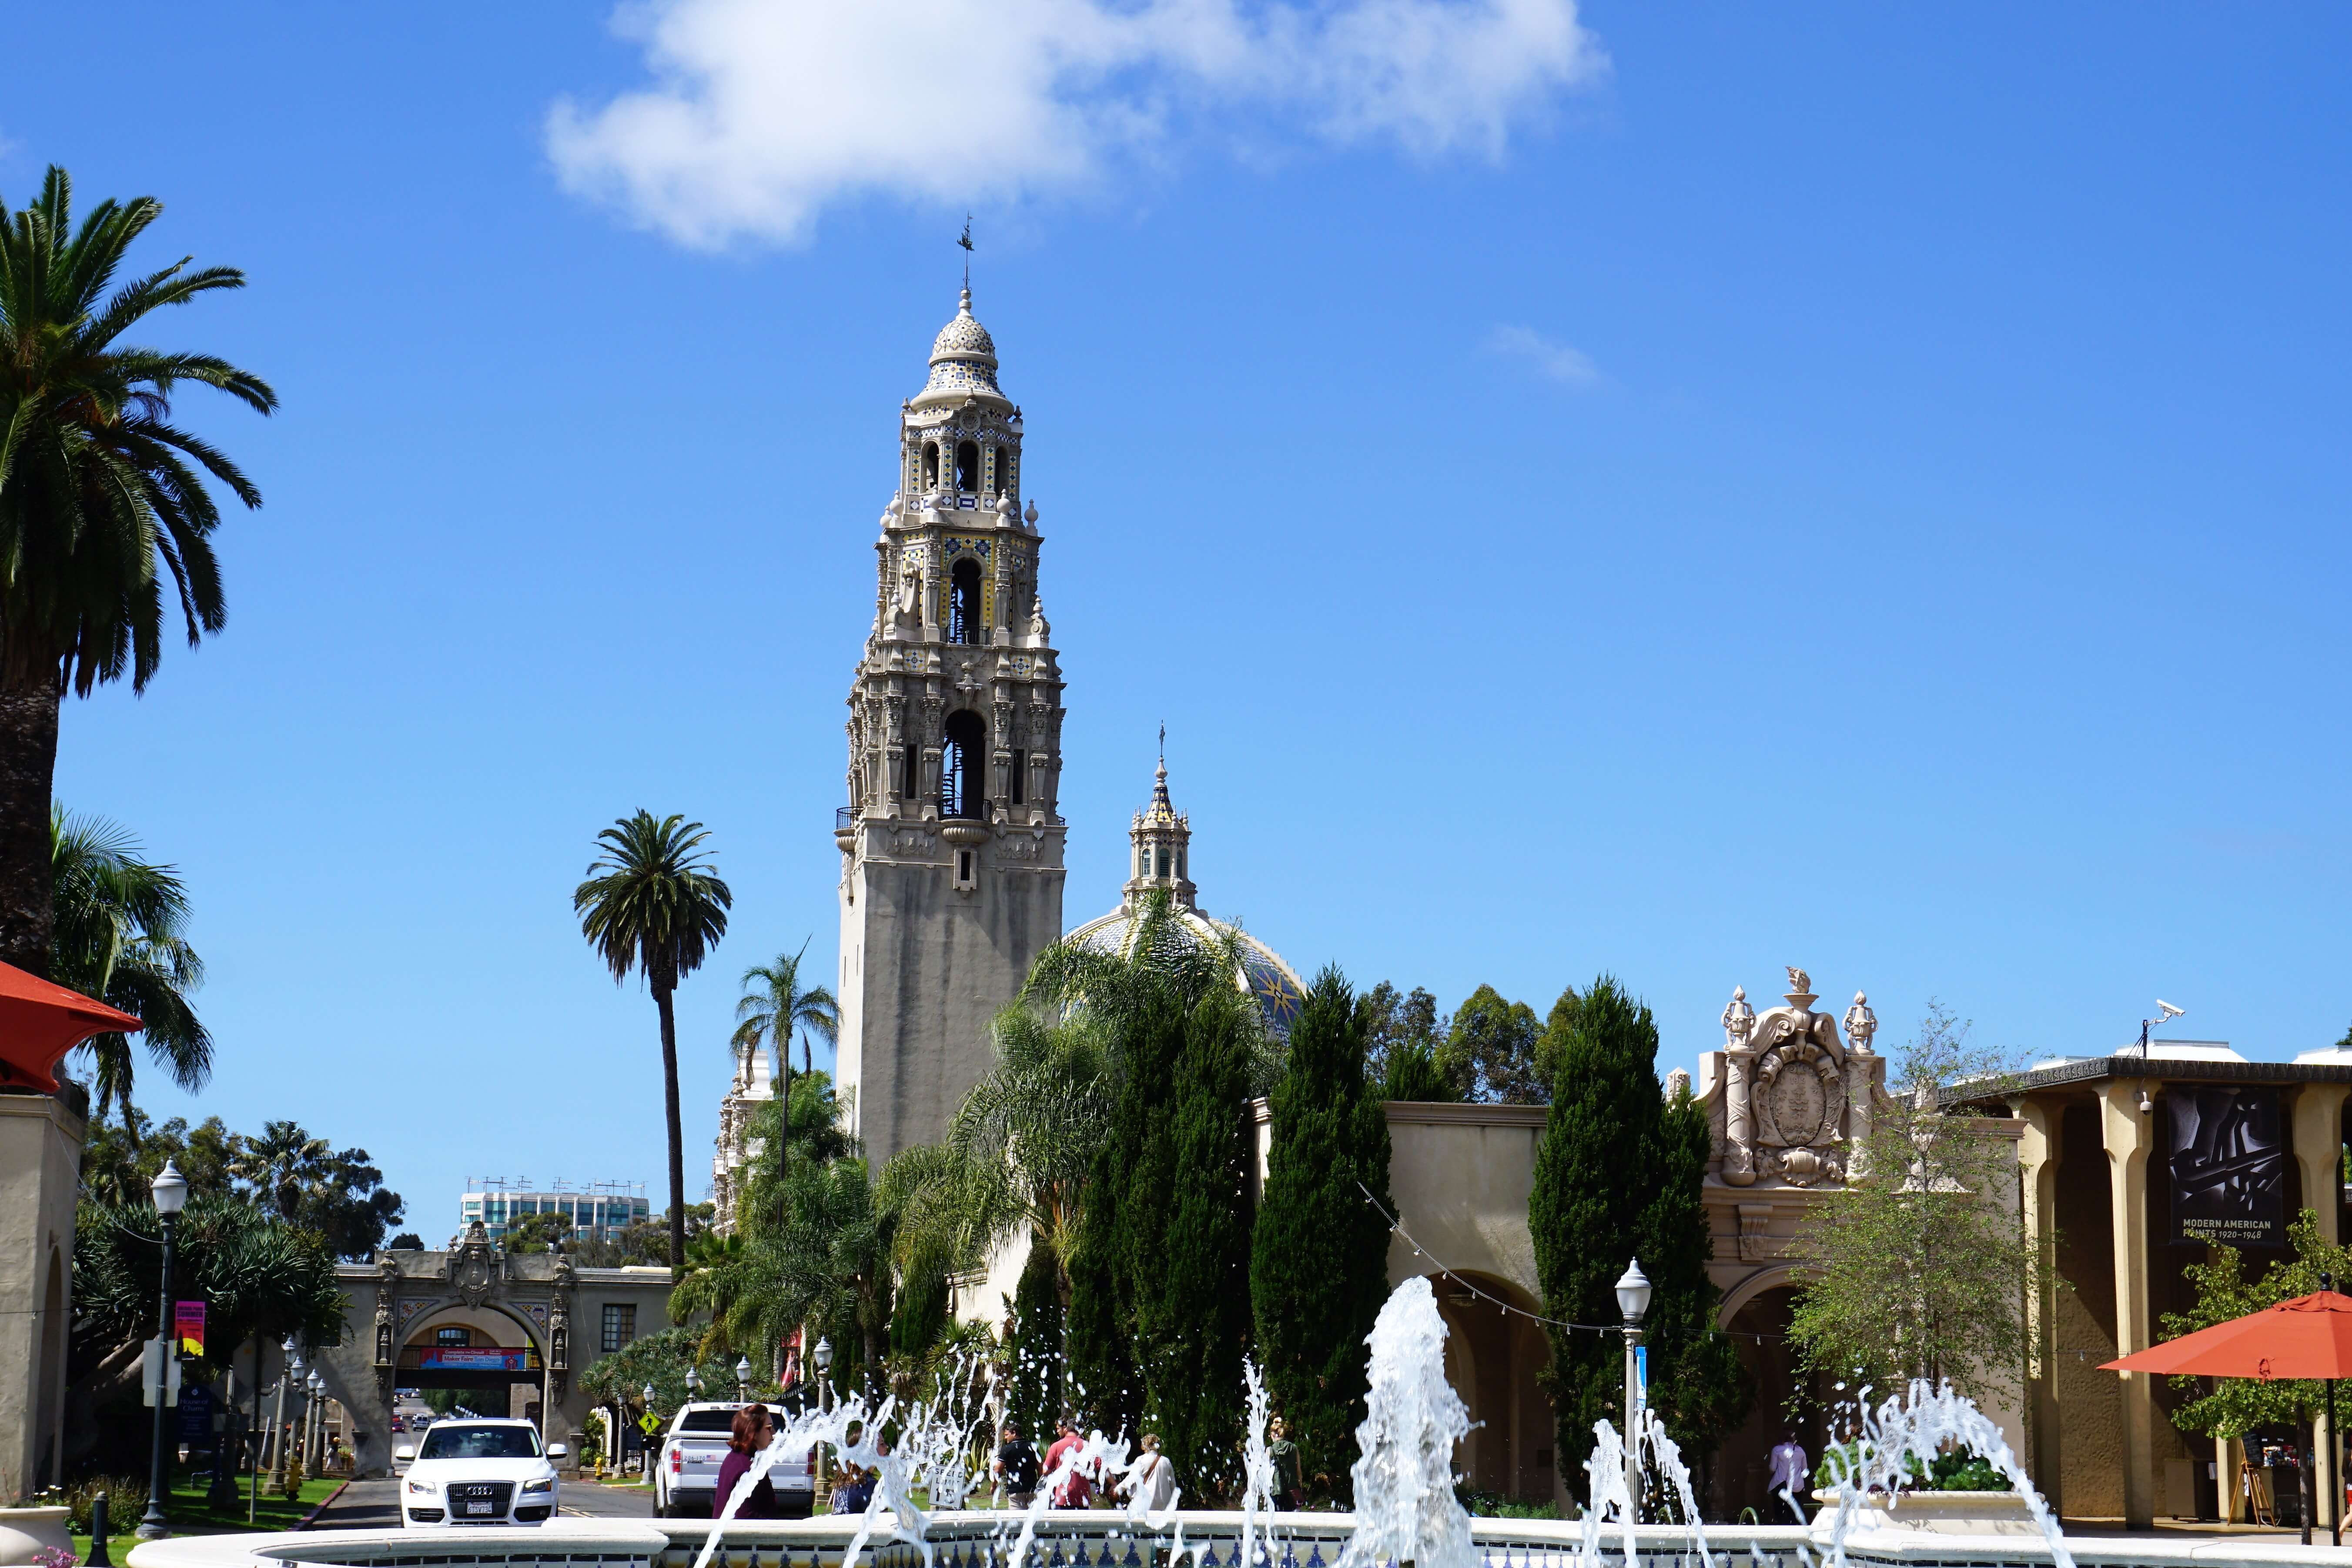 Center of Balboa Park, a fountain and view of Museum of Man